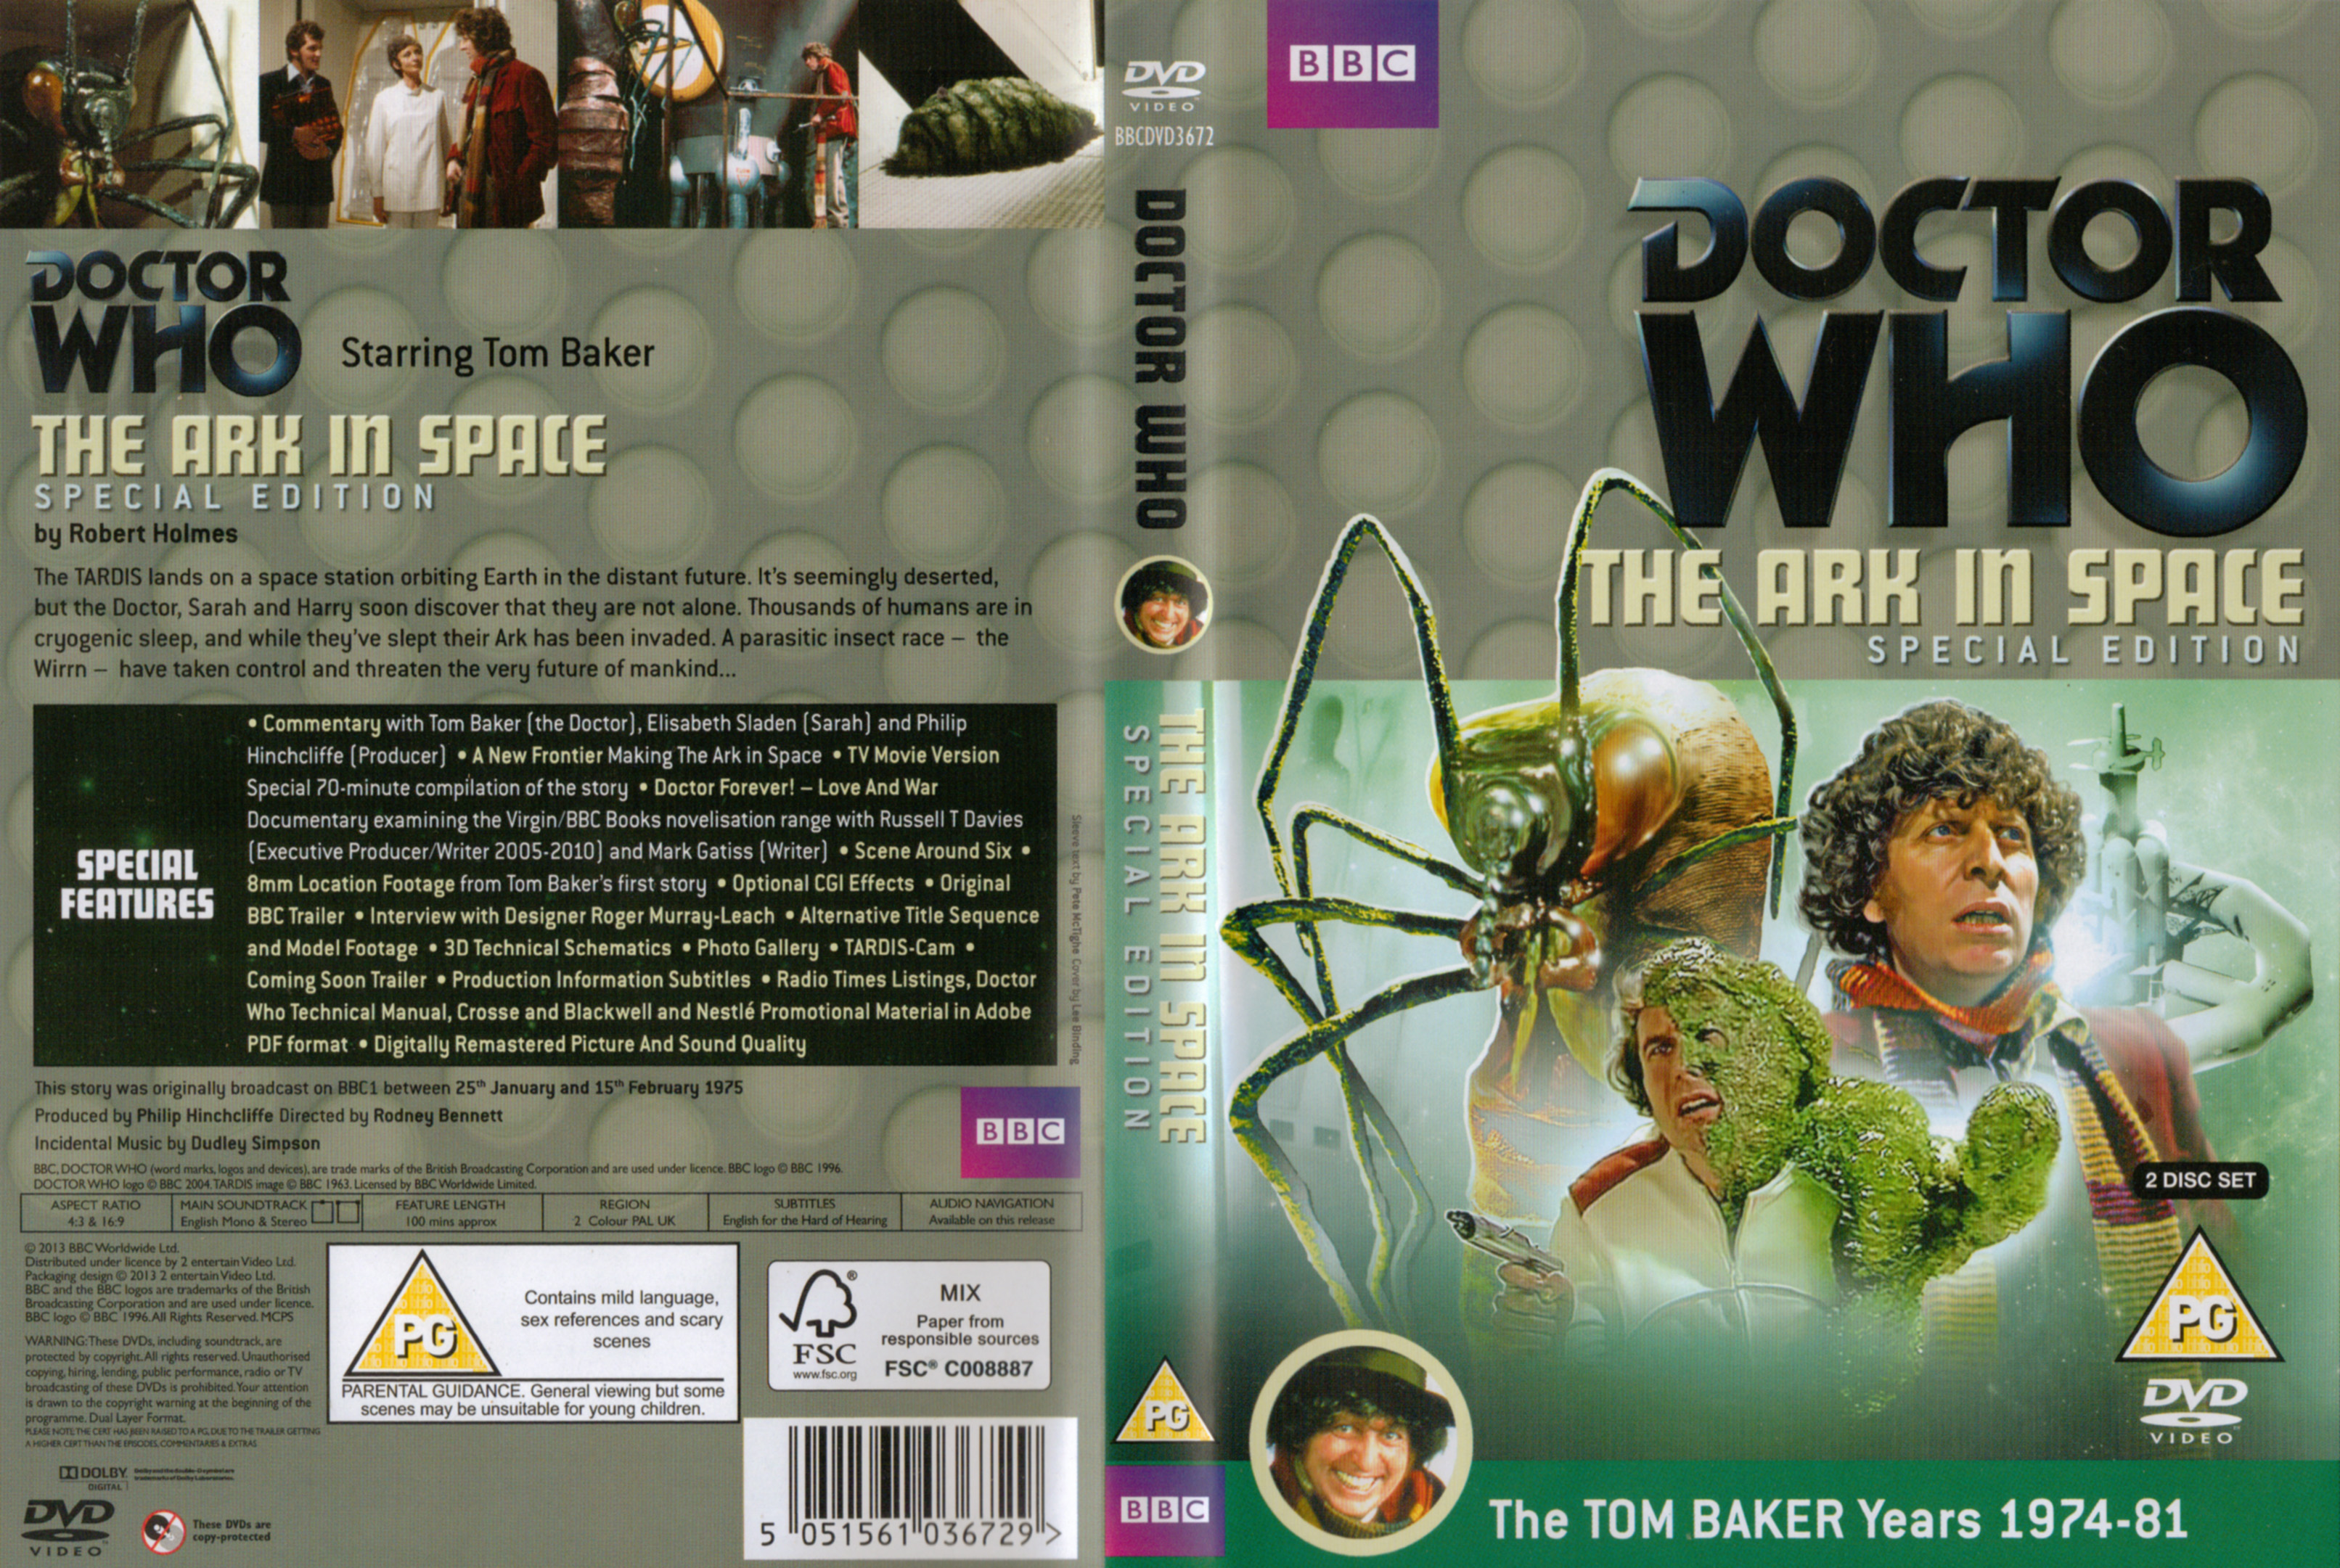 The Ark In Space Special Edition DVD